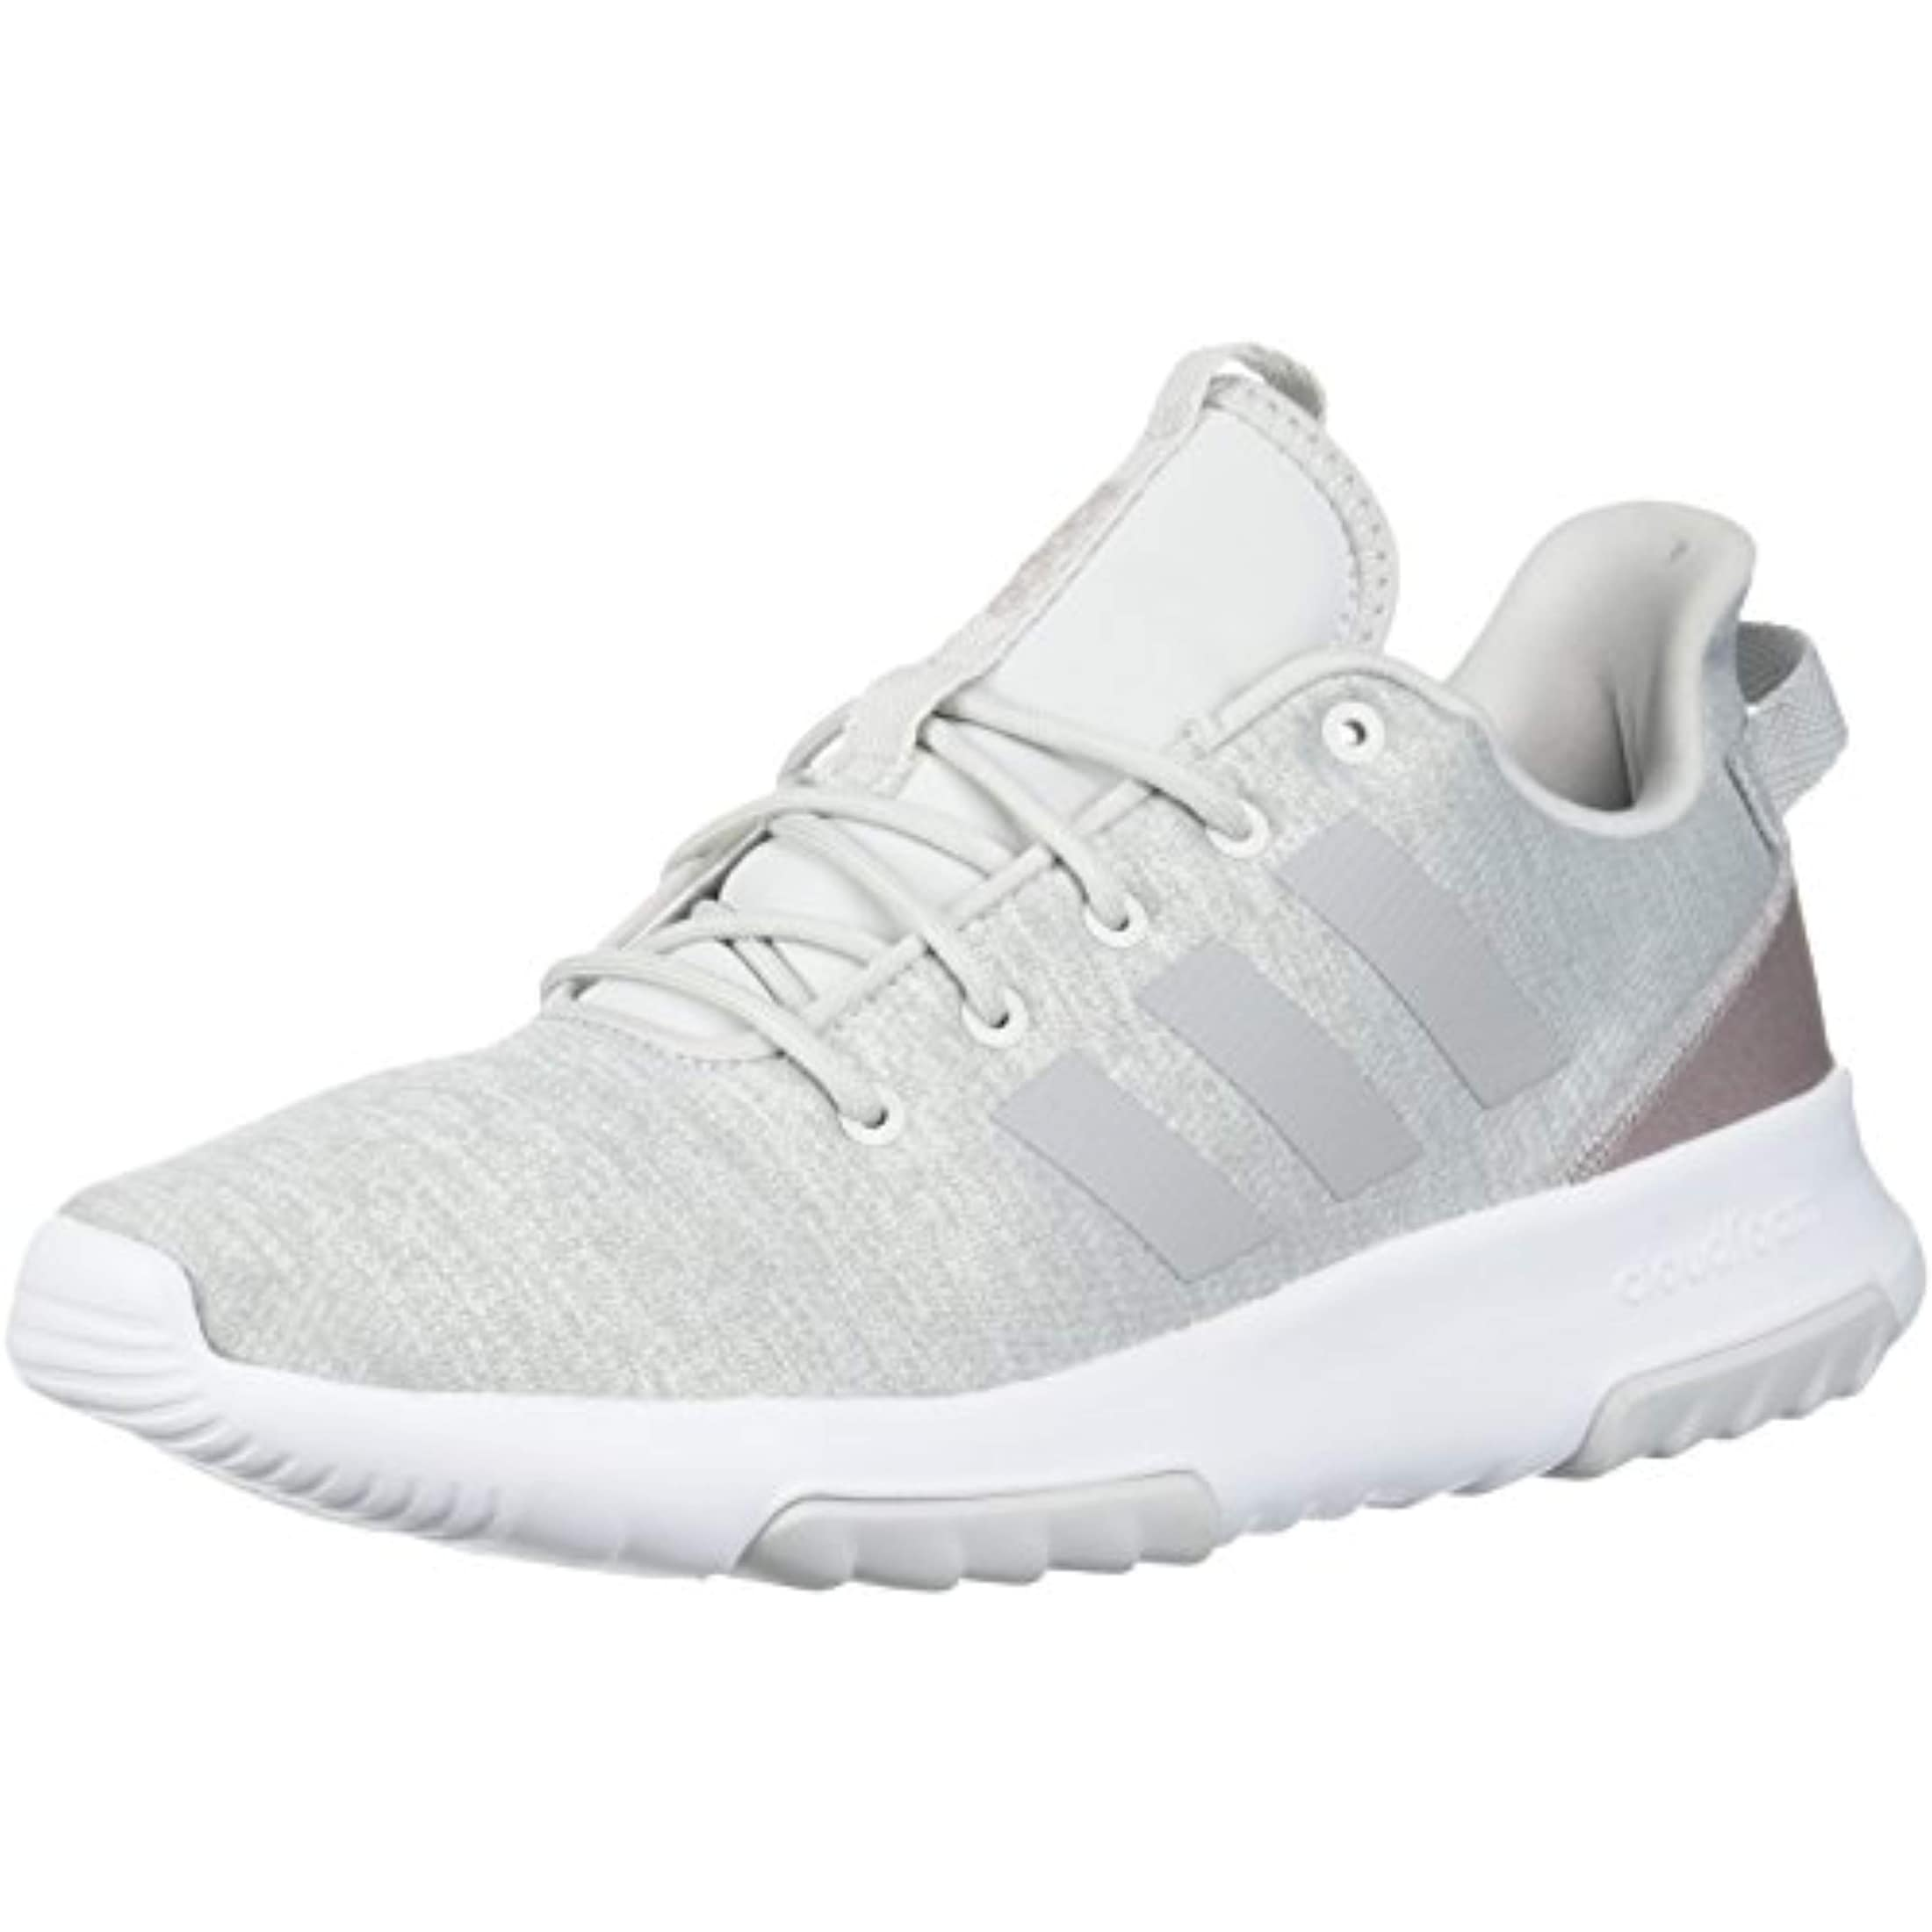 pretty nice f30b0 4a8e8 Shop Adidas Neo Women s Cf Racer Tr W Running Shoe, Grey One Grey  Two Vapour Grey - Free Shipping Today - Overstock - 27124858